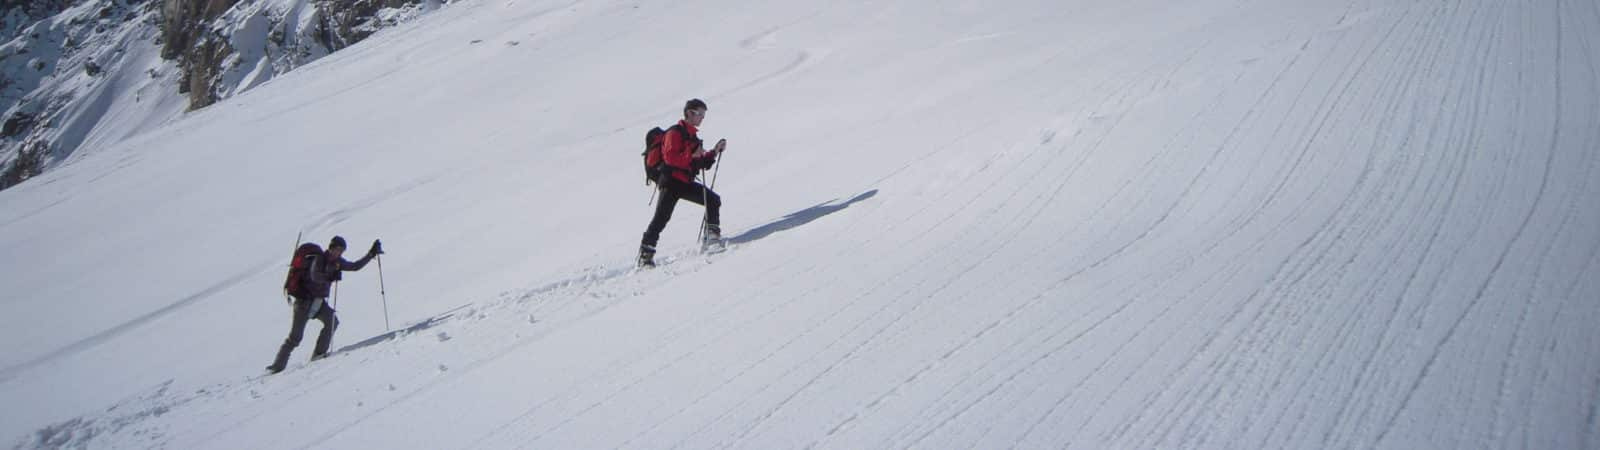 Ski touring and Freeride skiing in Les 3 Vallées